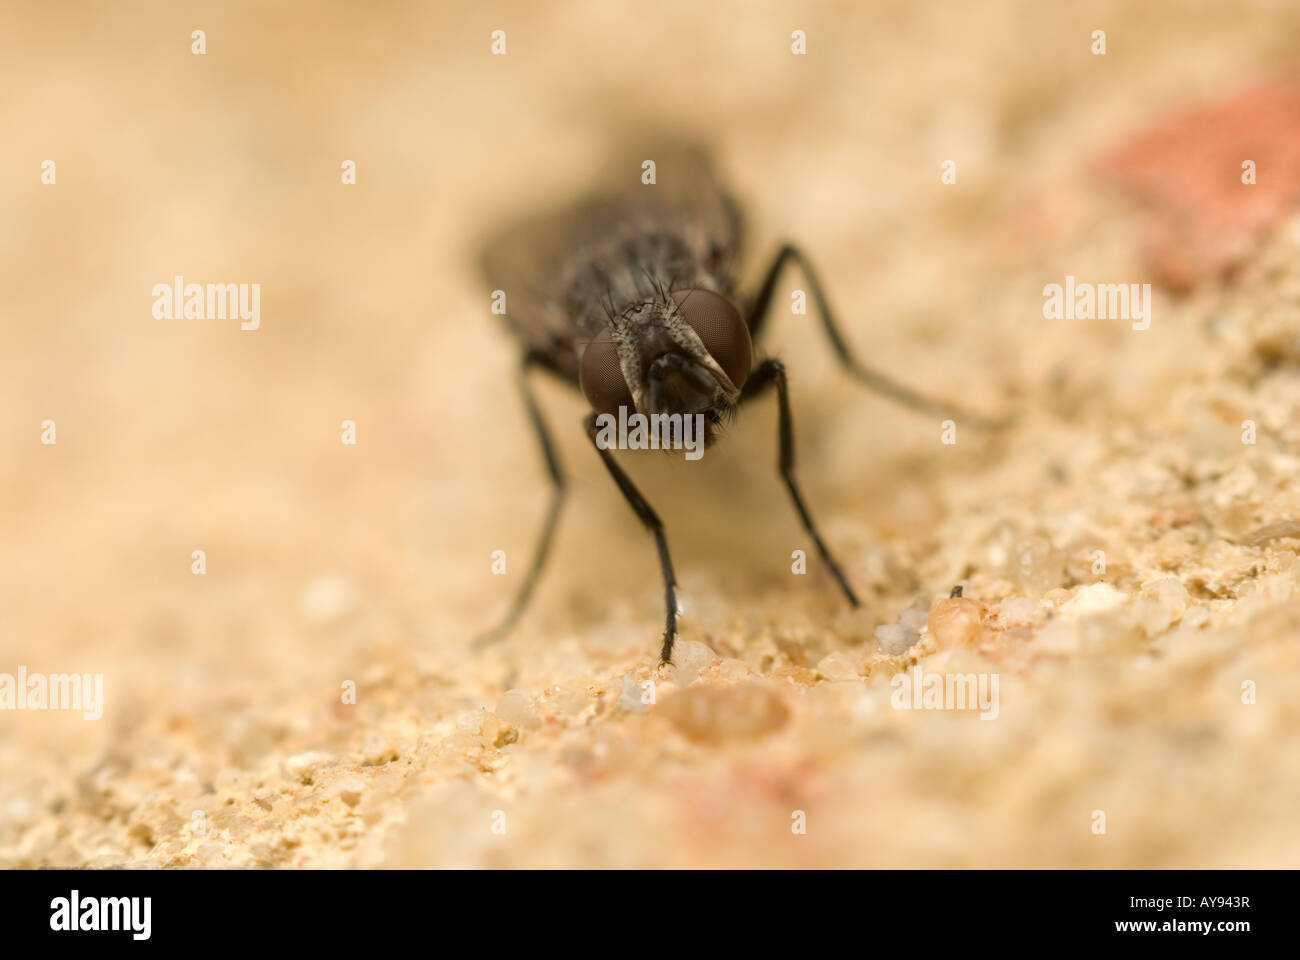 Fly On The Wall Stock Photos & Fly On The Wall Stock Images - Alamy